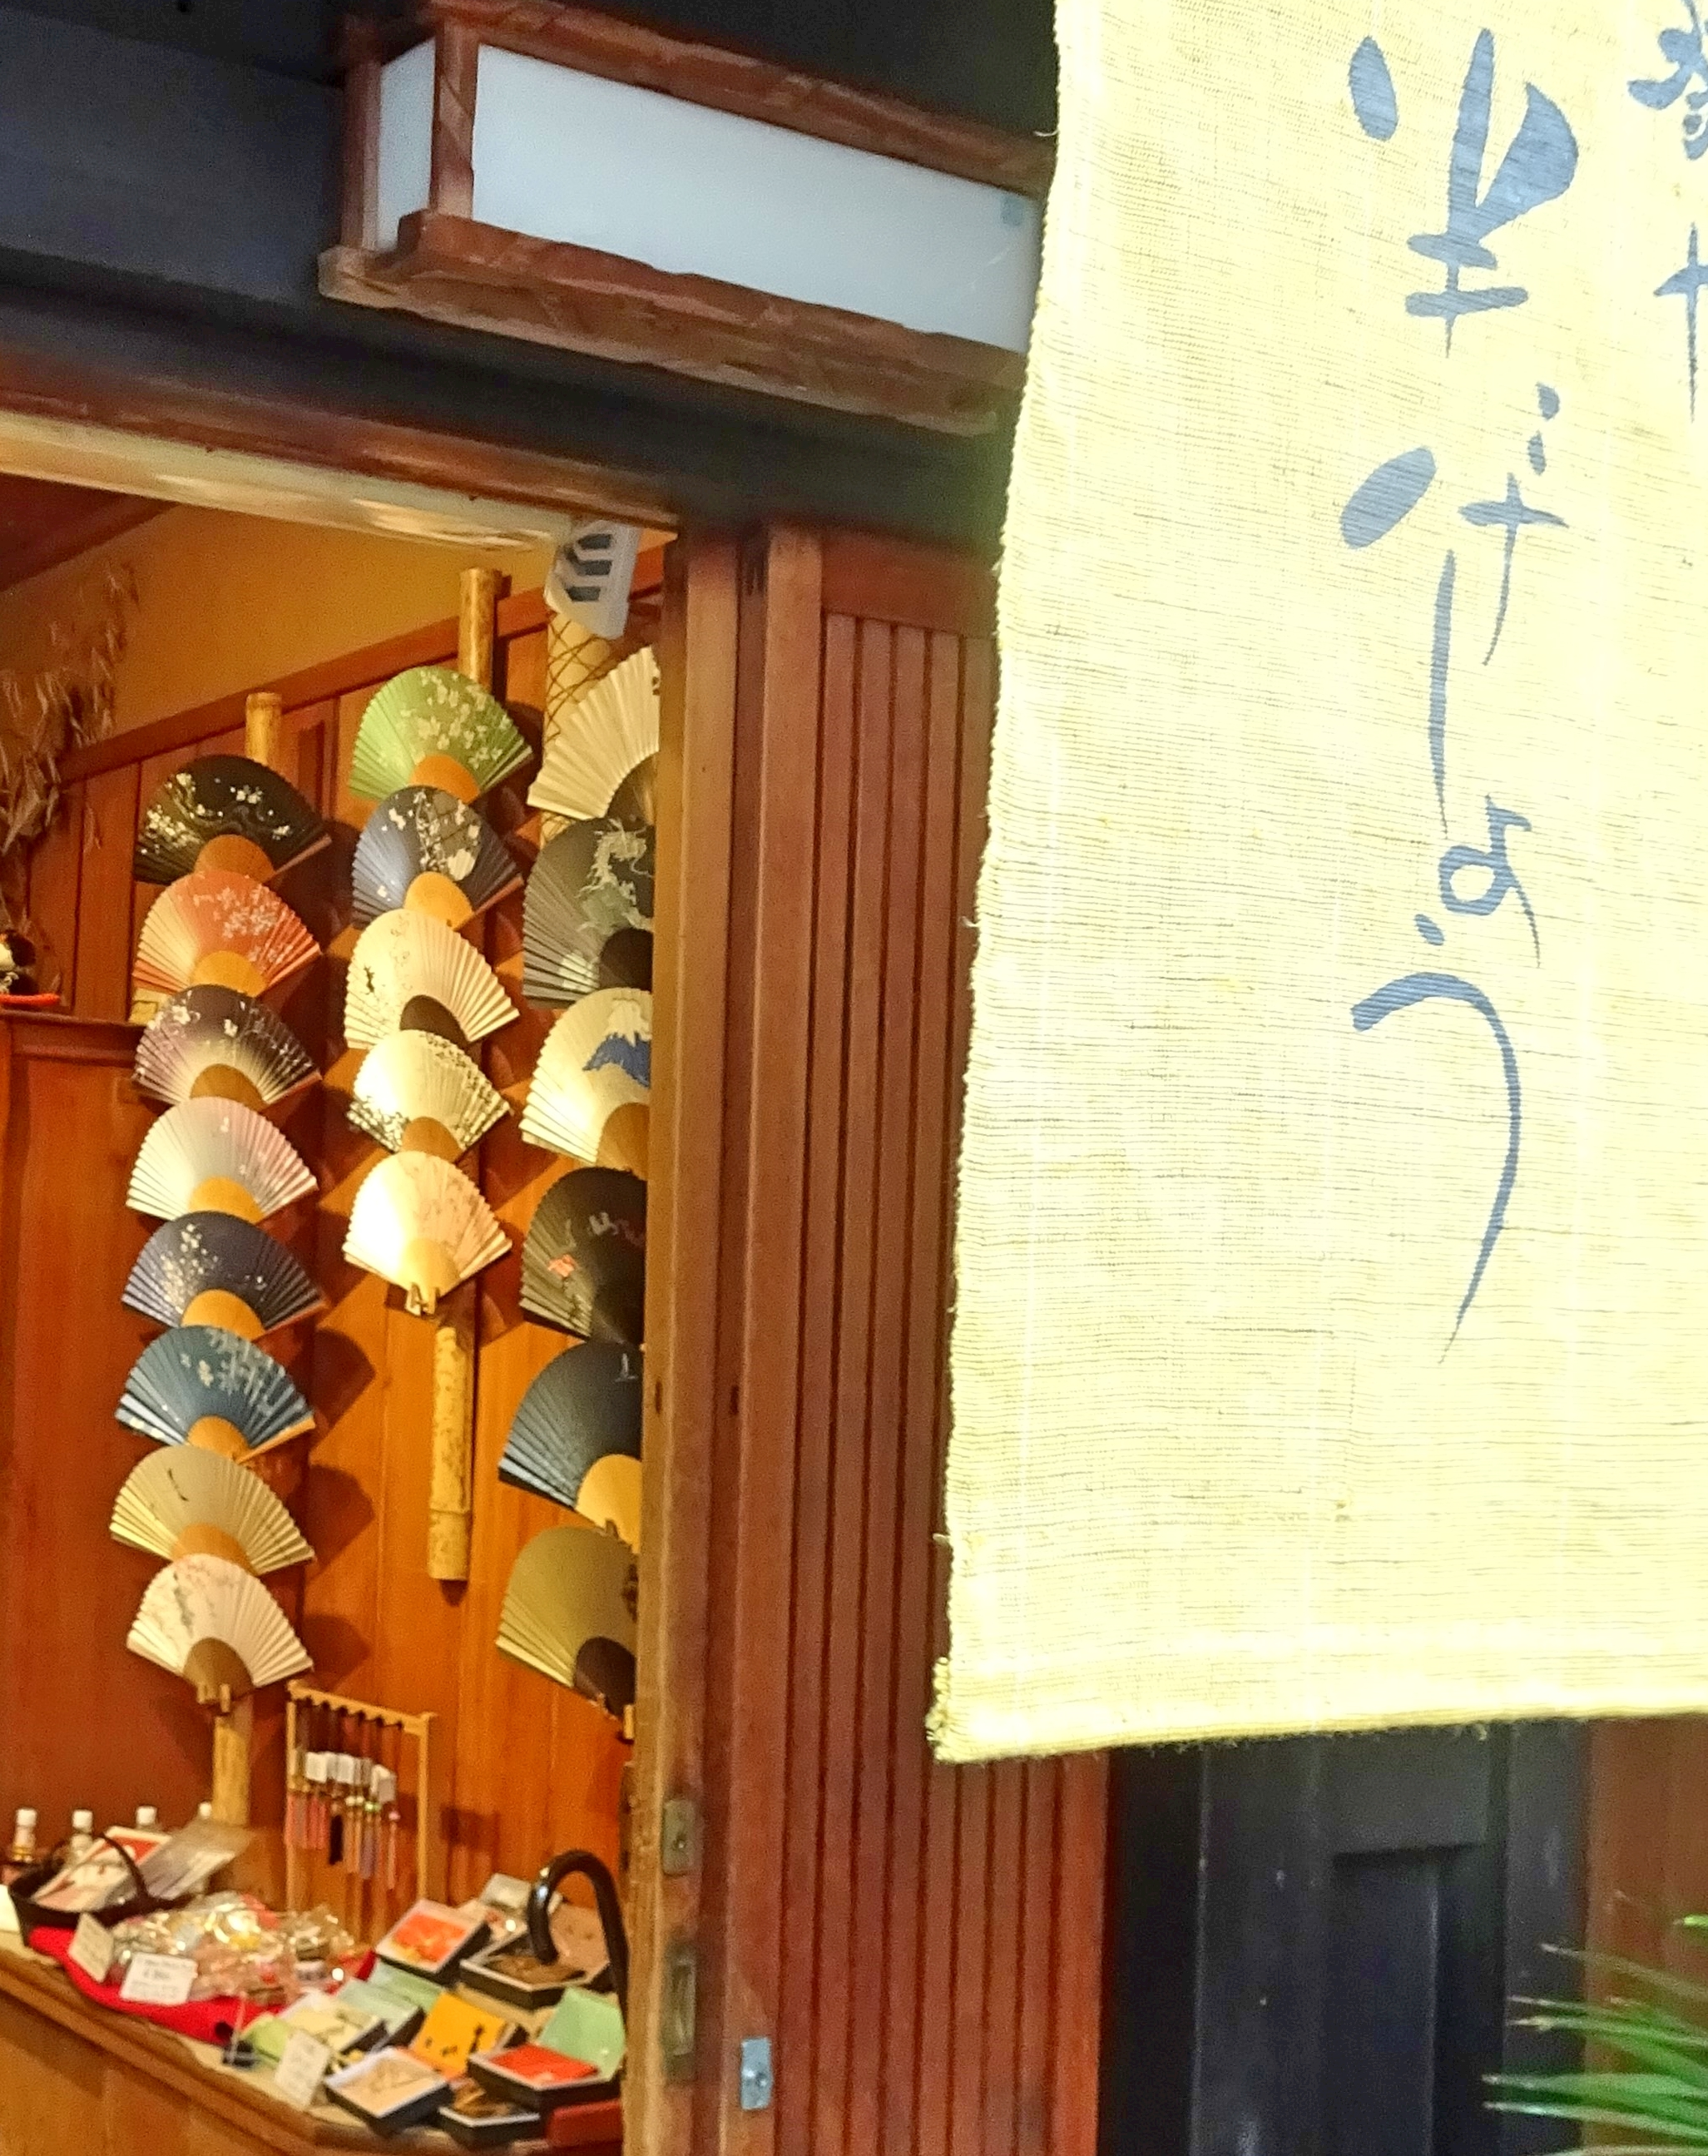 Traditional fans in the Gion Geisha quarter in Kyoto